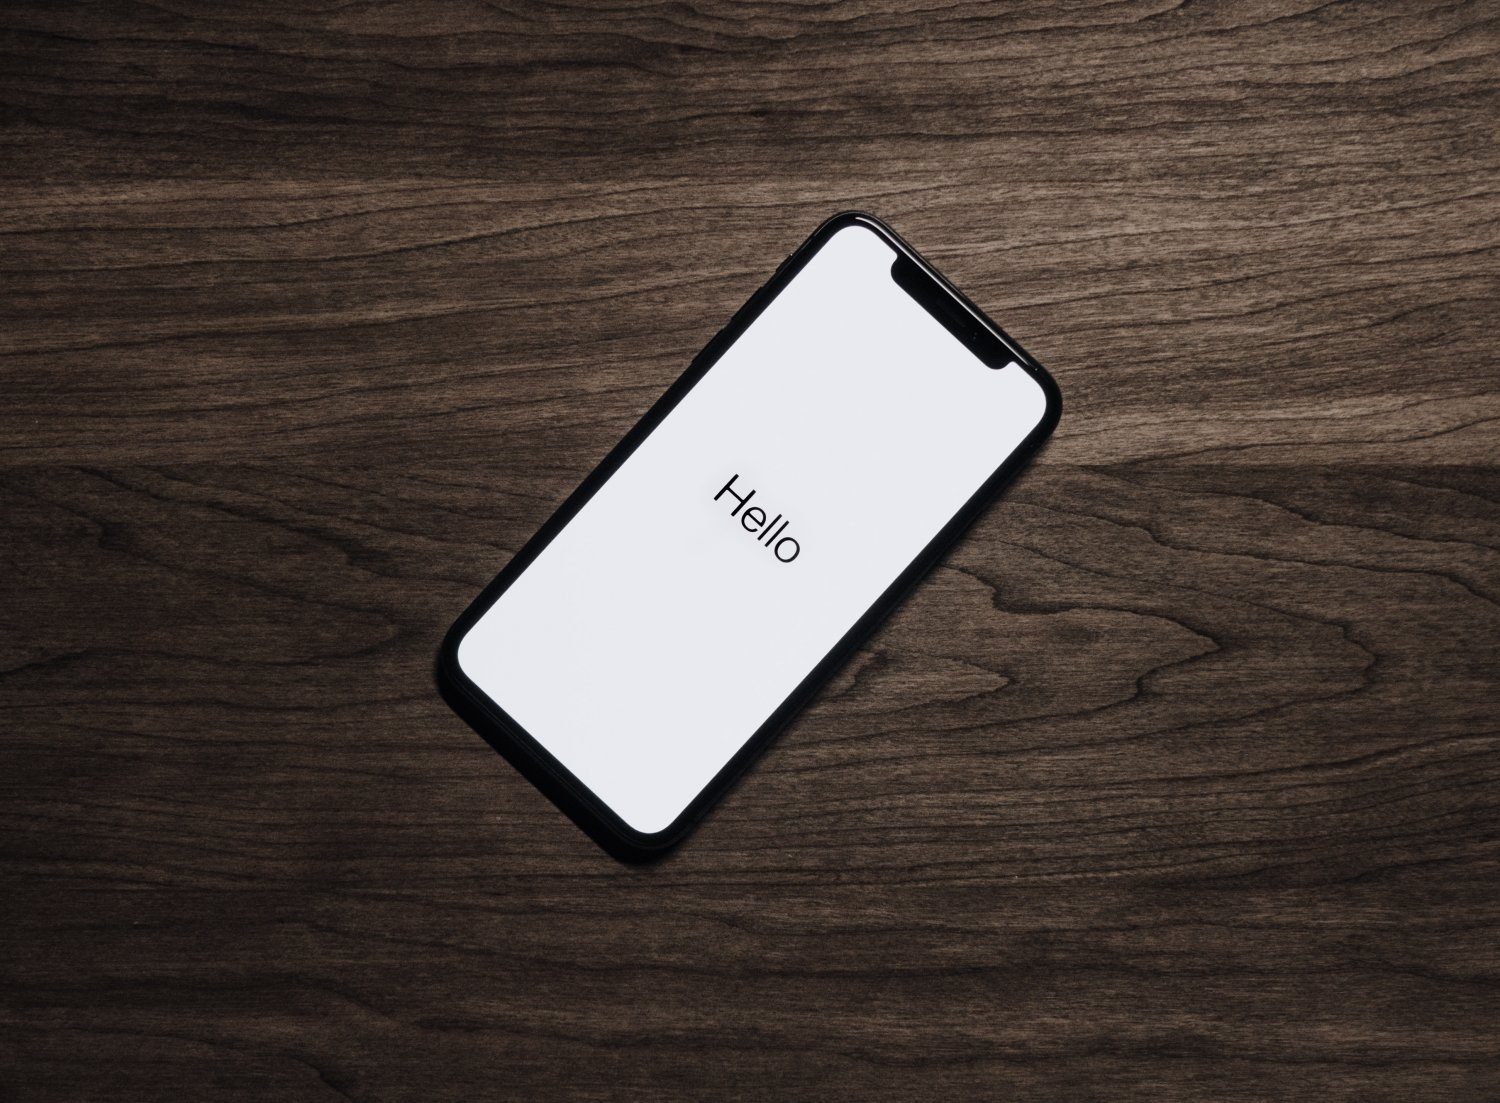 iPhone with hello on screen